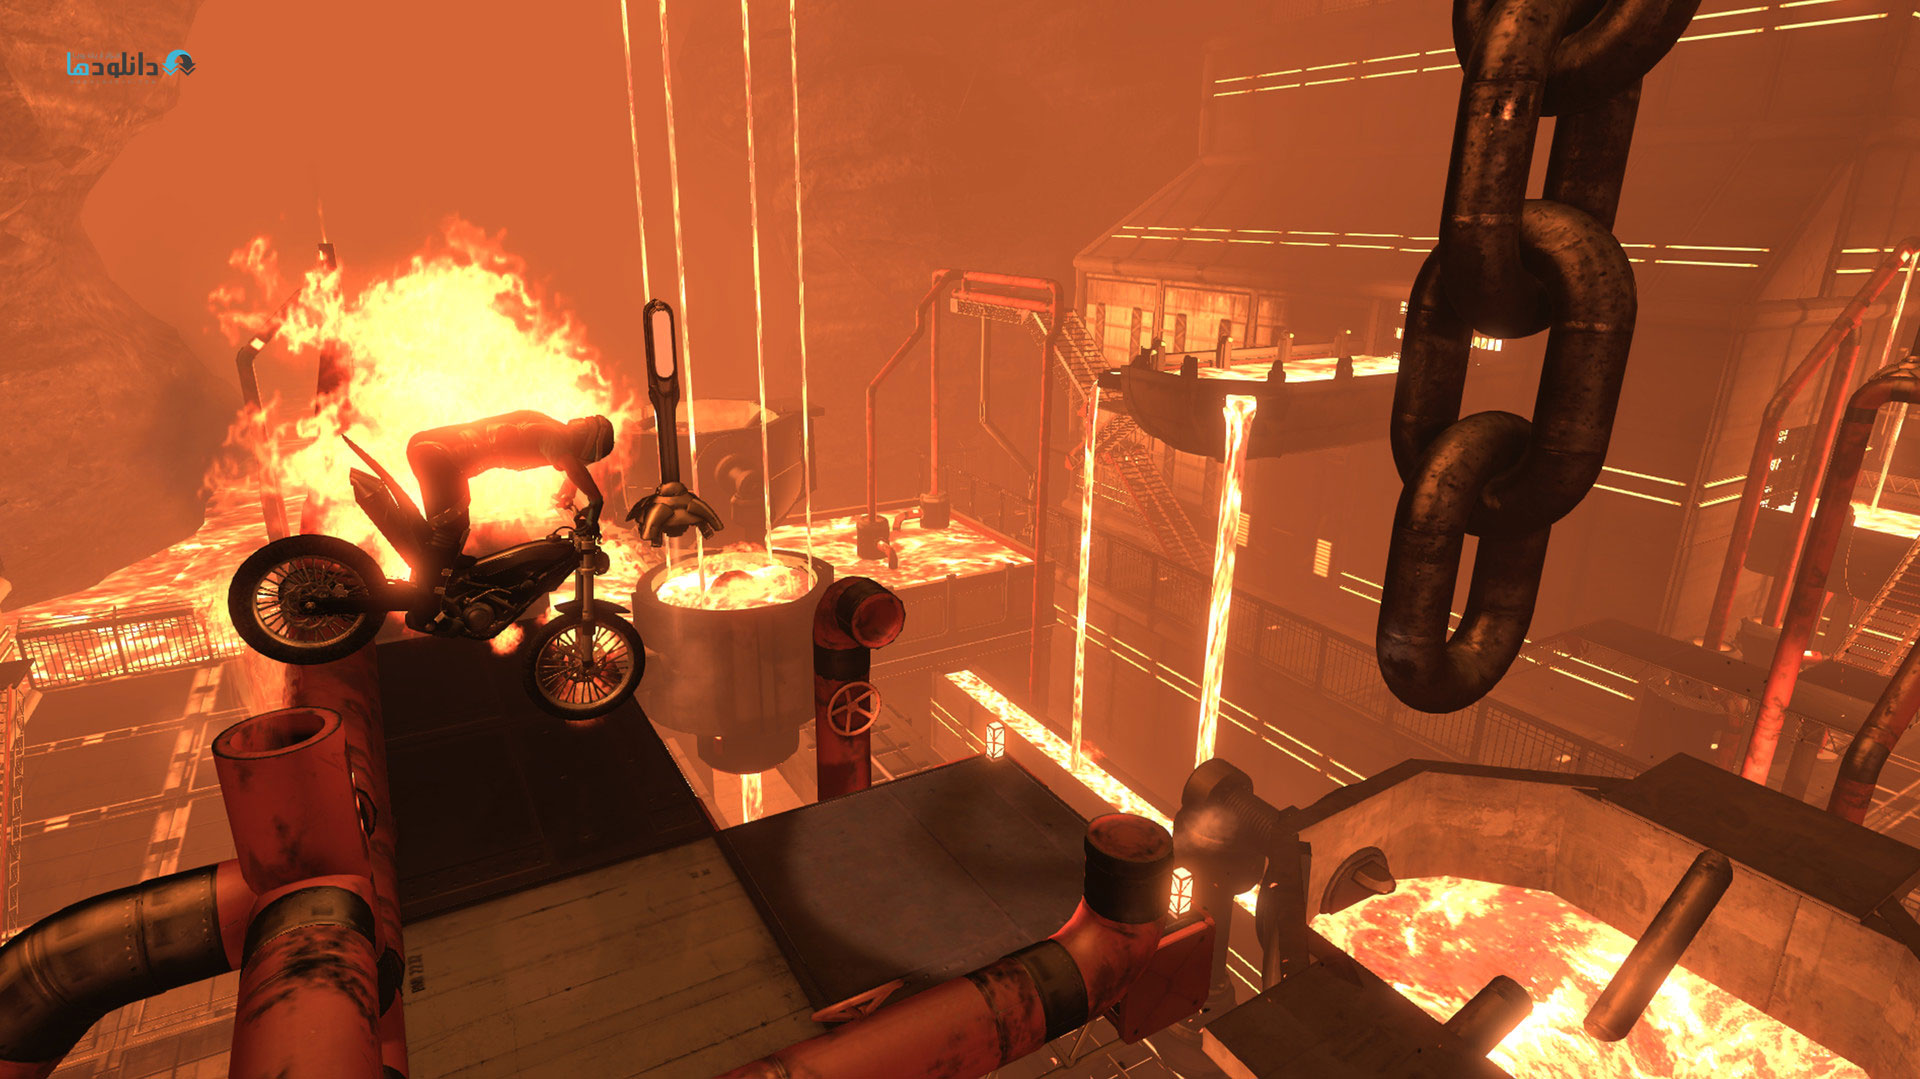 http://dl5.downloadha.com/hosein/Game/January%202015/30/Trials-Fusion-Fire-in-the-Deep-screenshots-03-large.jpg